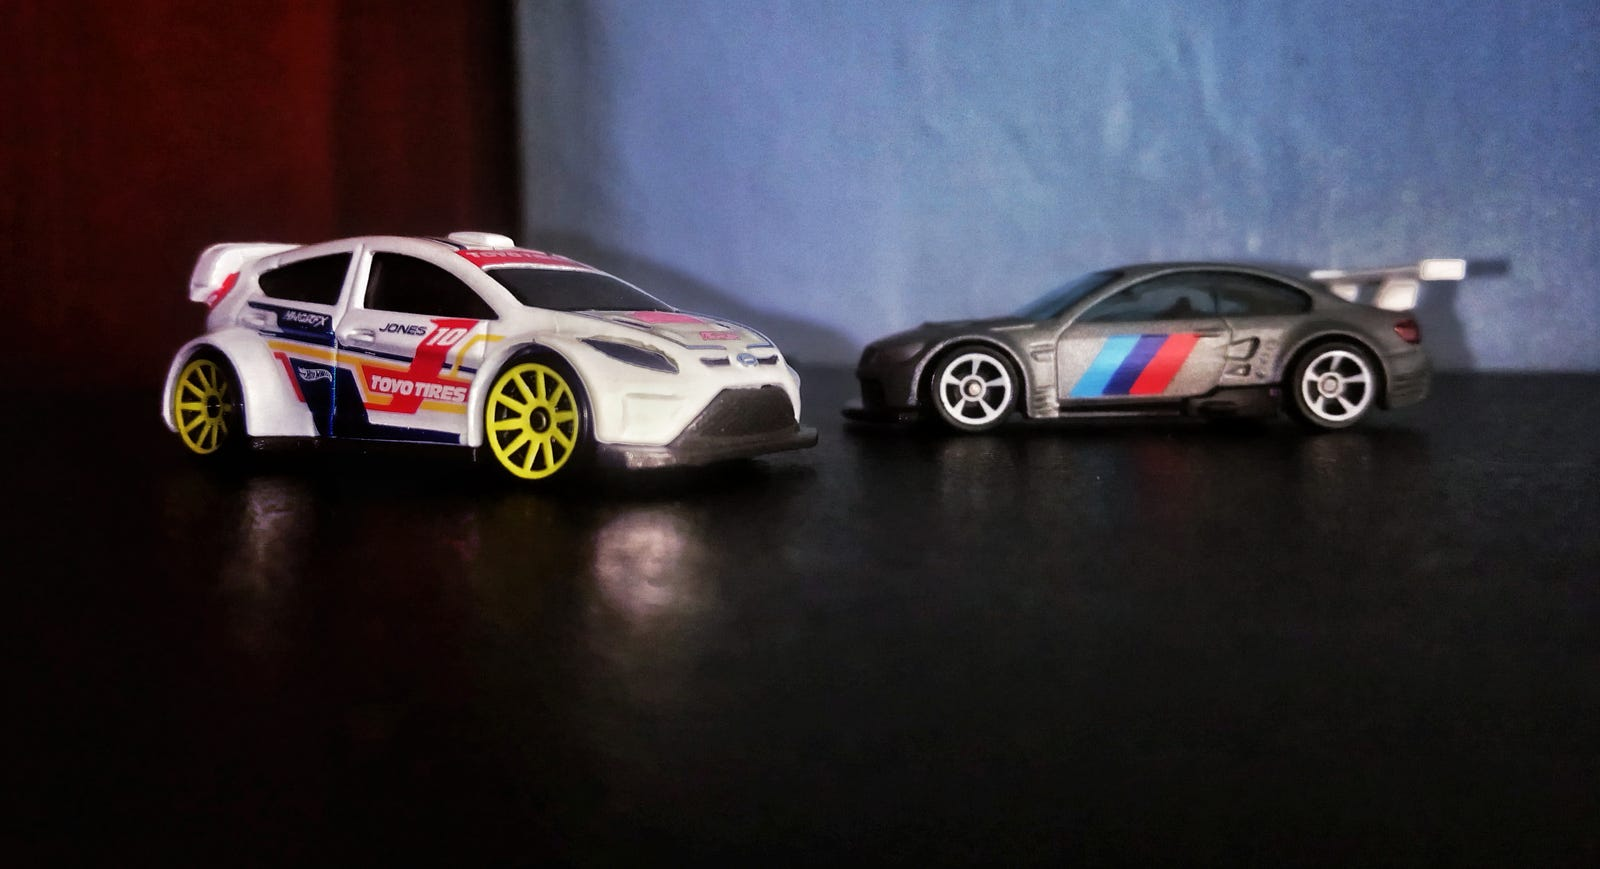 YES! An actually good livery on the Fiesta, and my first M3 GT2. I am so happy to get these two.